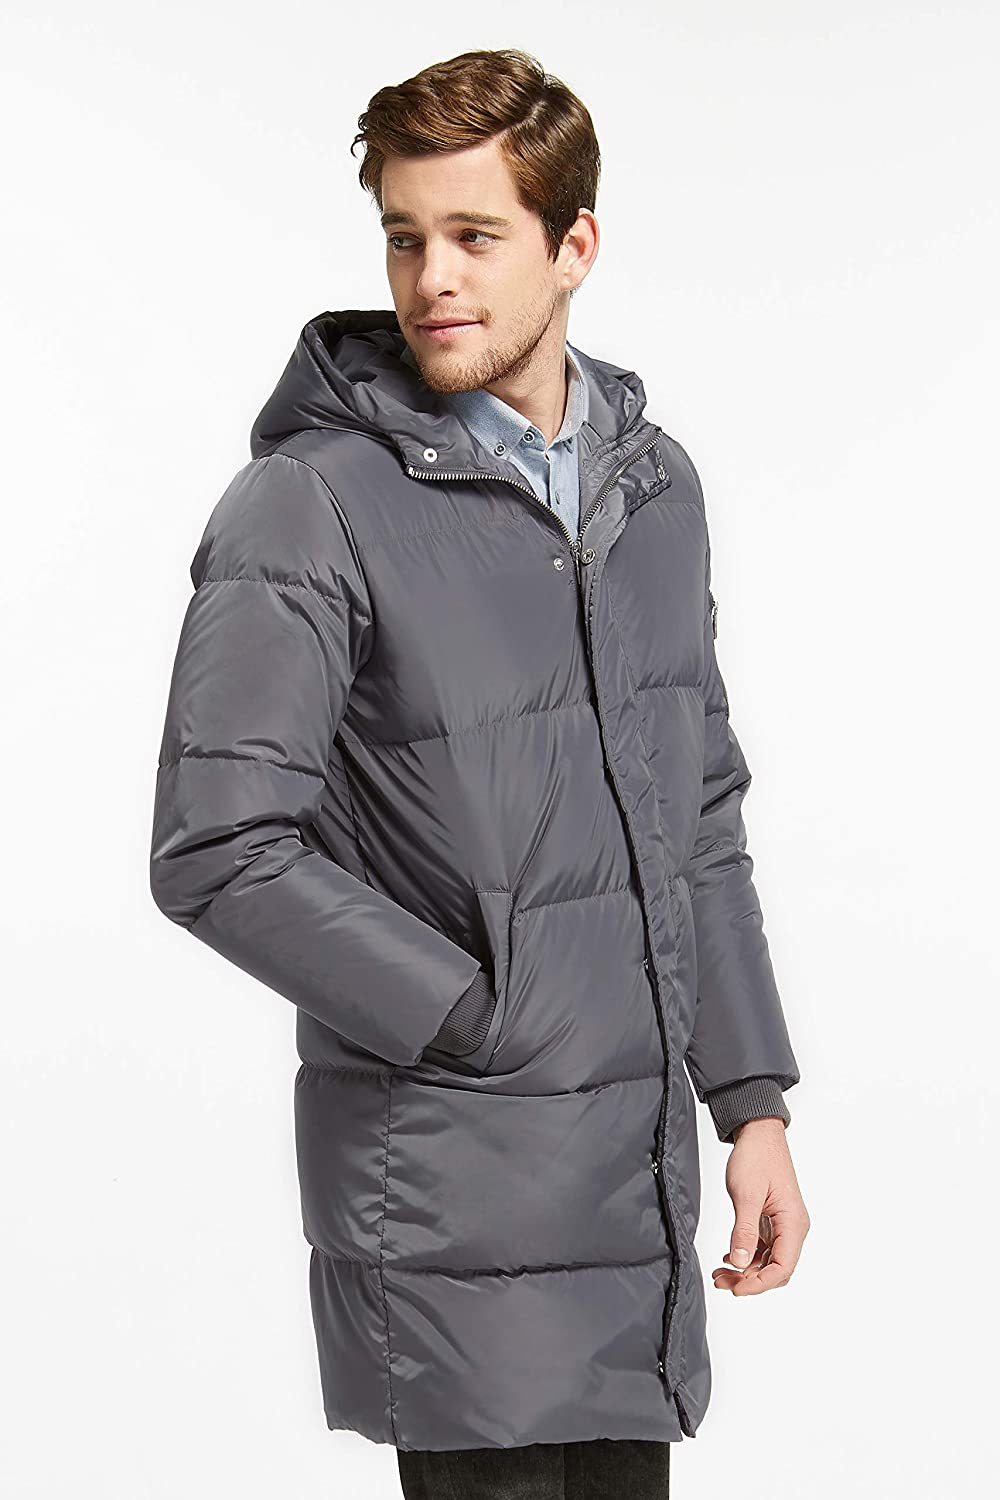 Orolay Men's Thickened Down Jacket Winter Warm Down Coat